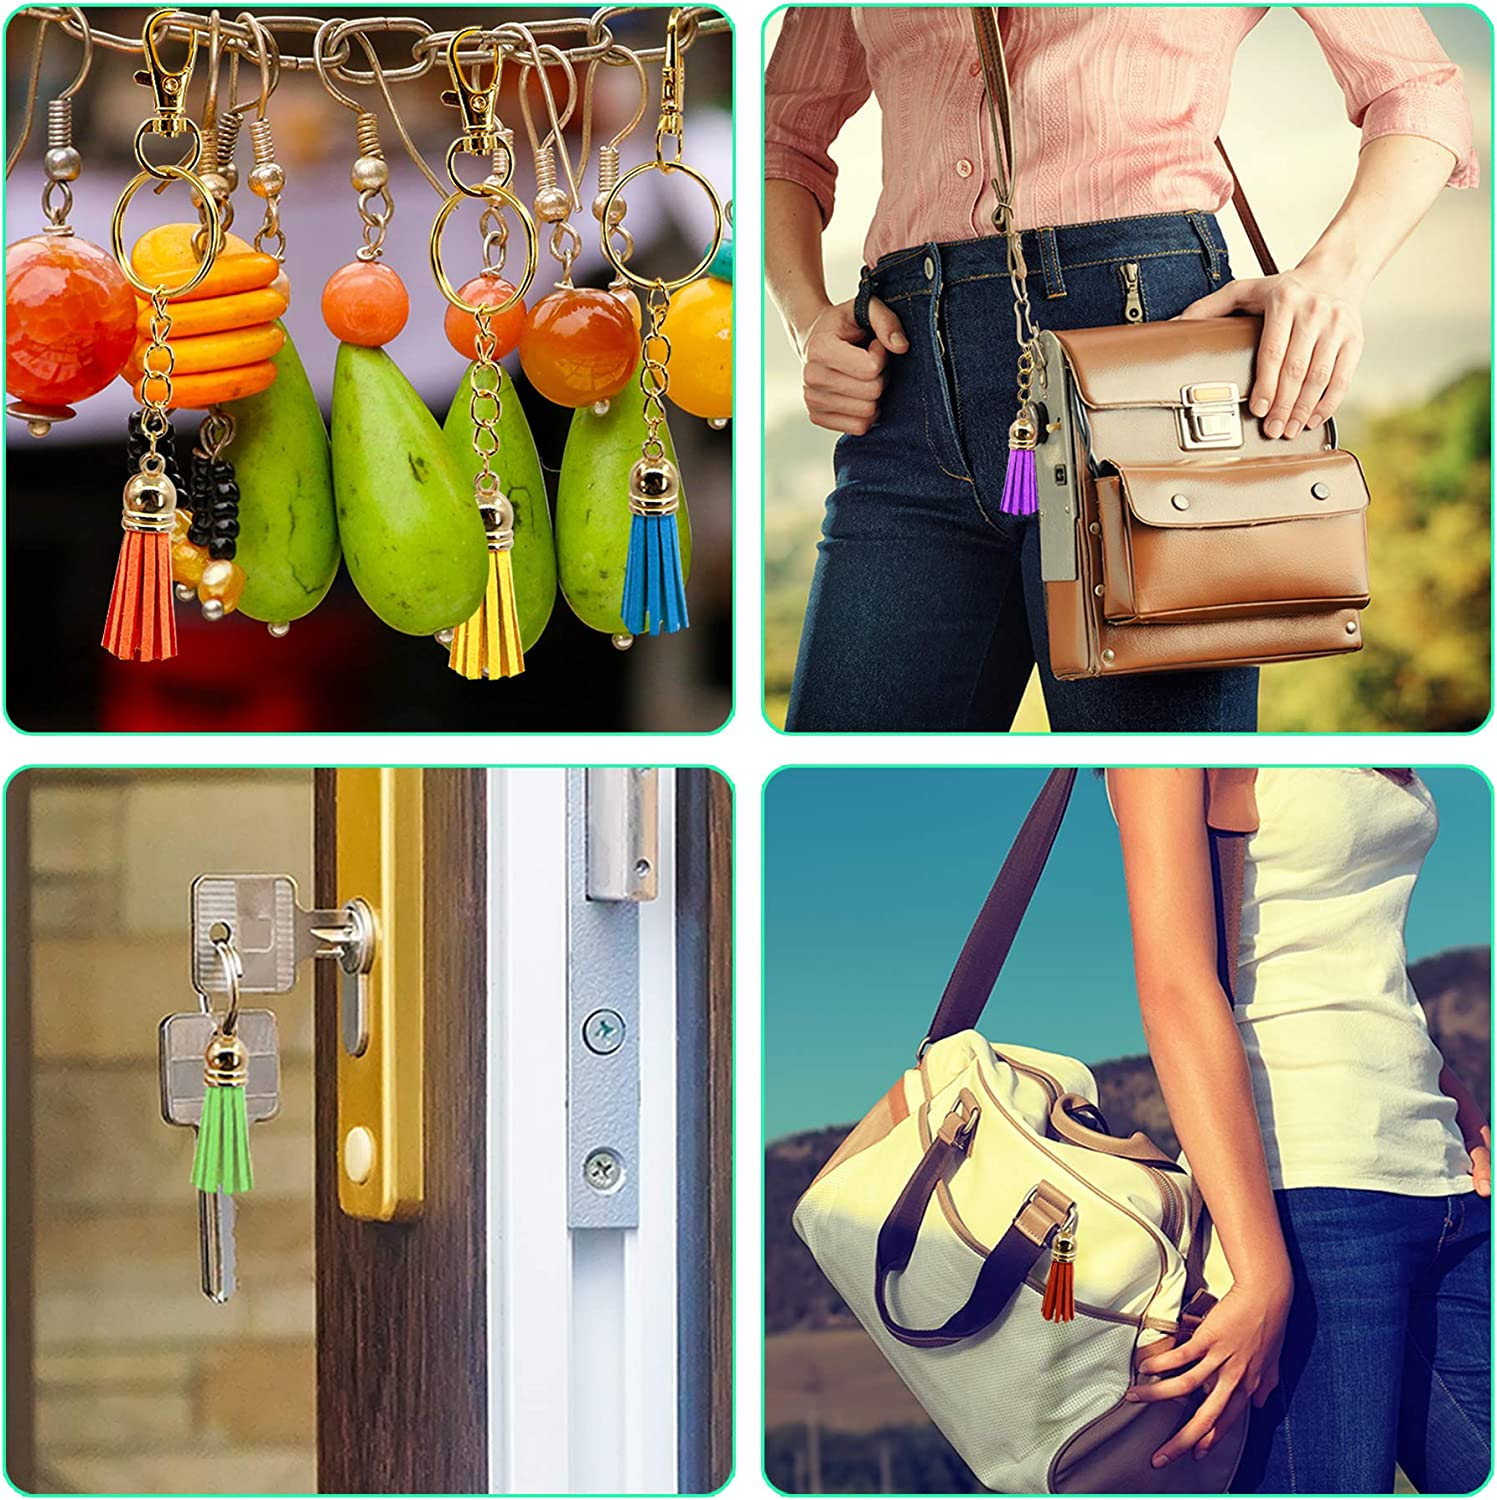 50 Colors Duufin 250 Pieces Keychain Tassels Bulk Colored Leather Tassel Pendants for DIY Keychain and Craft